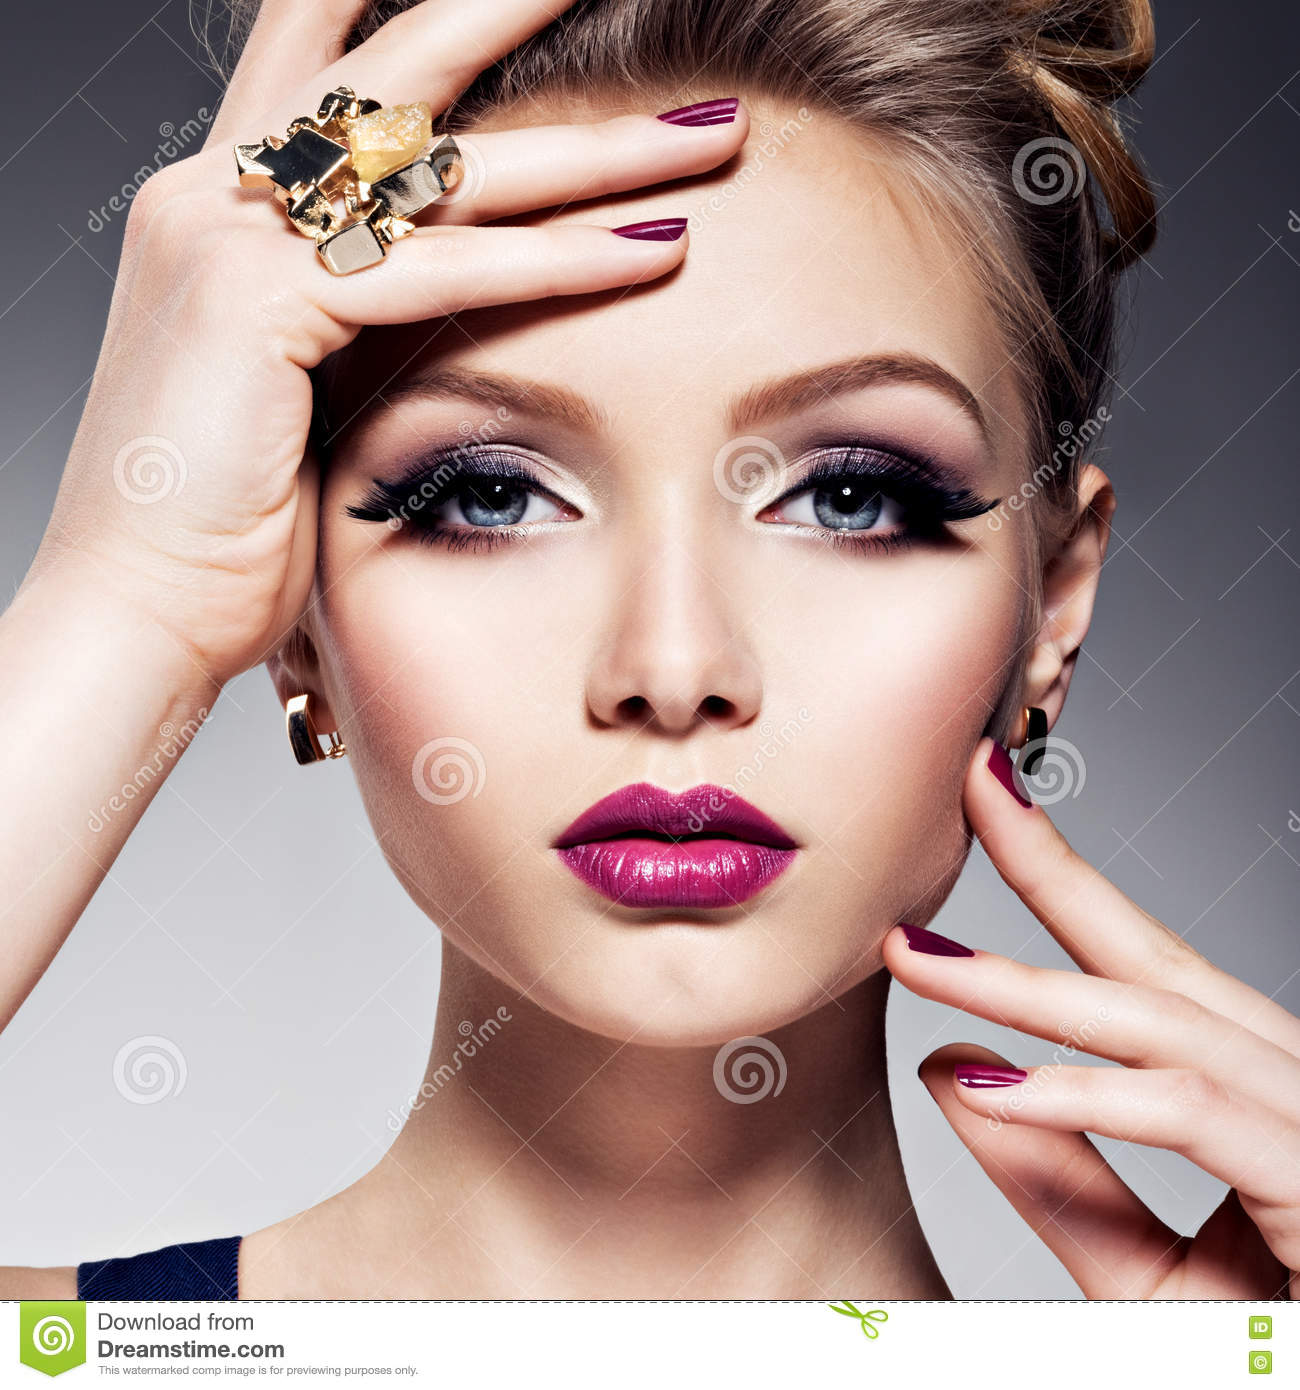 Pretty girl with beautiful face bright make-up and gold jewelry